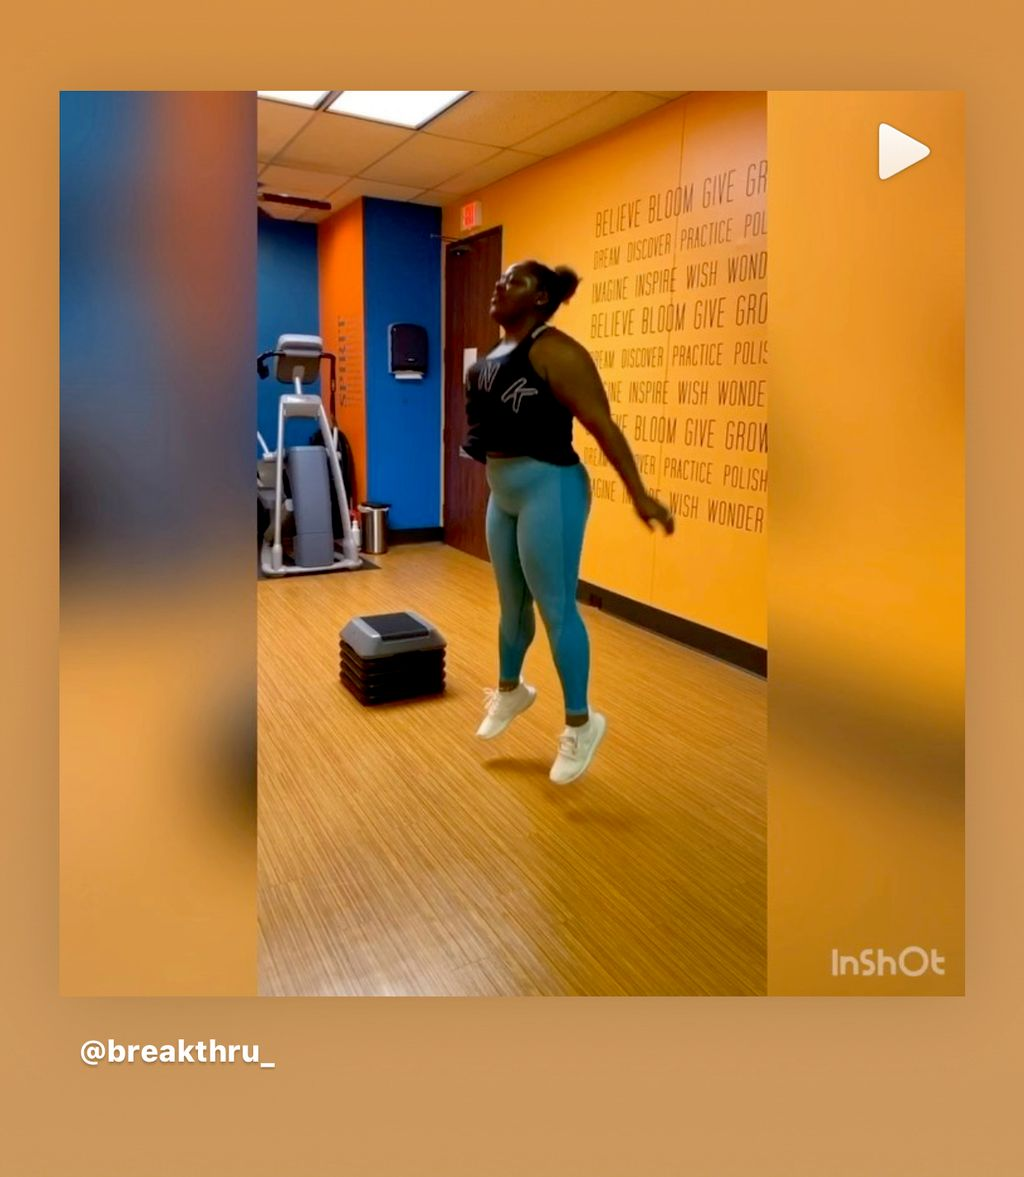 Personal Training - Jumping with a purpose - New Orleans 2019